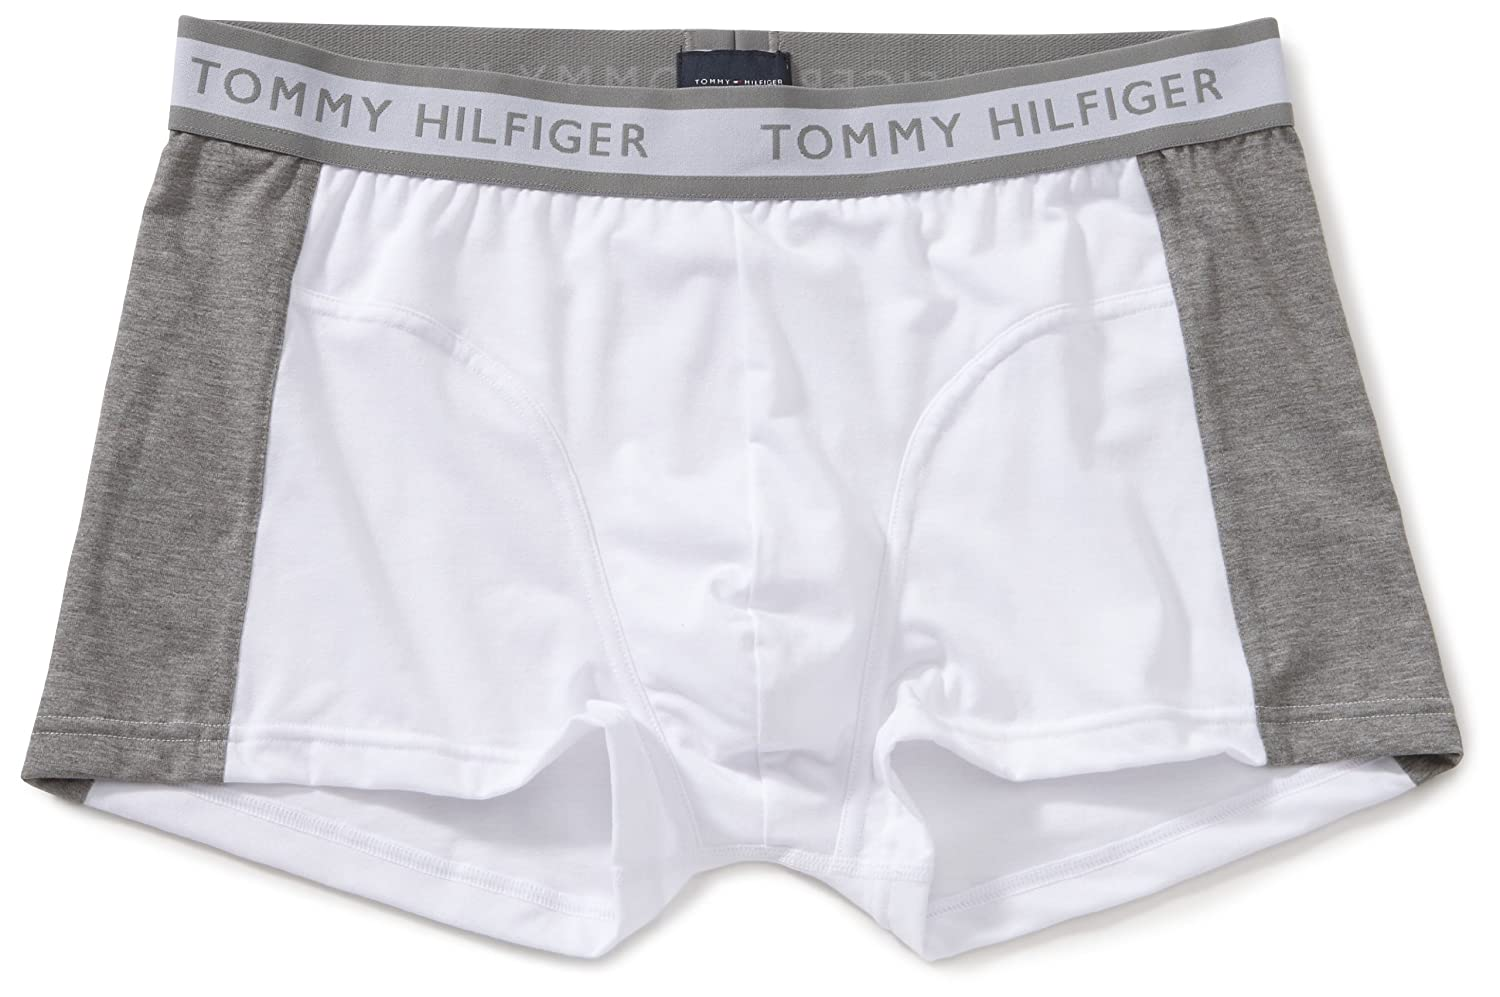 Tommy Hilfiger Men's Cool Stretch Boxer Shorts